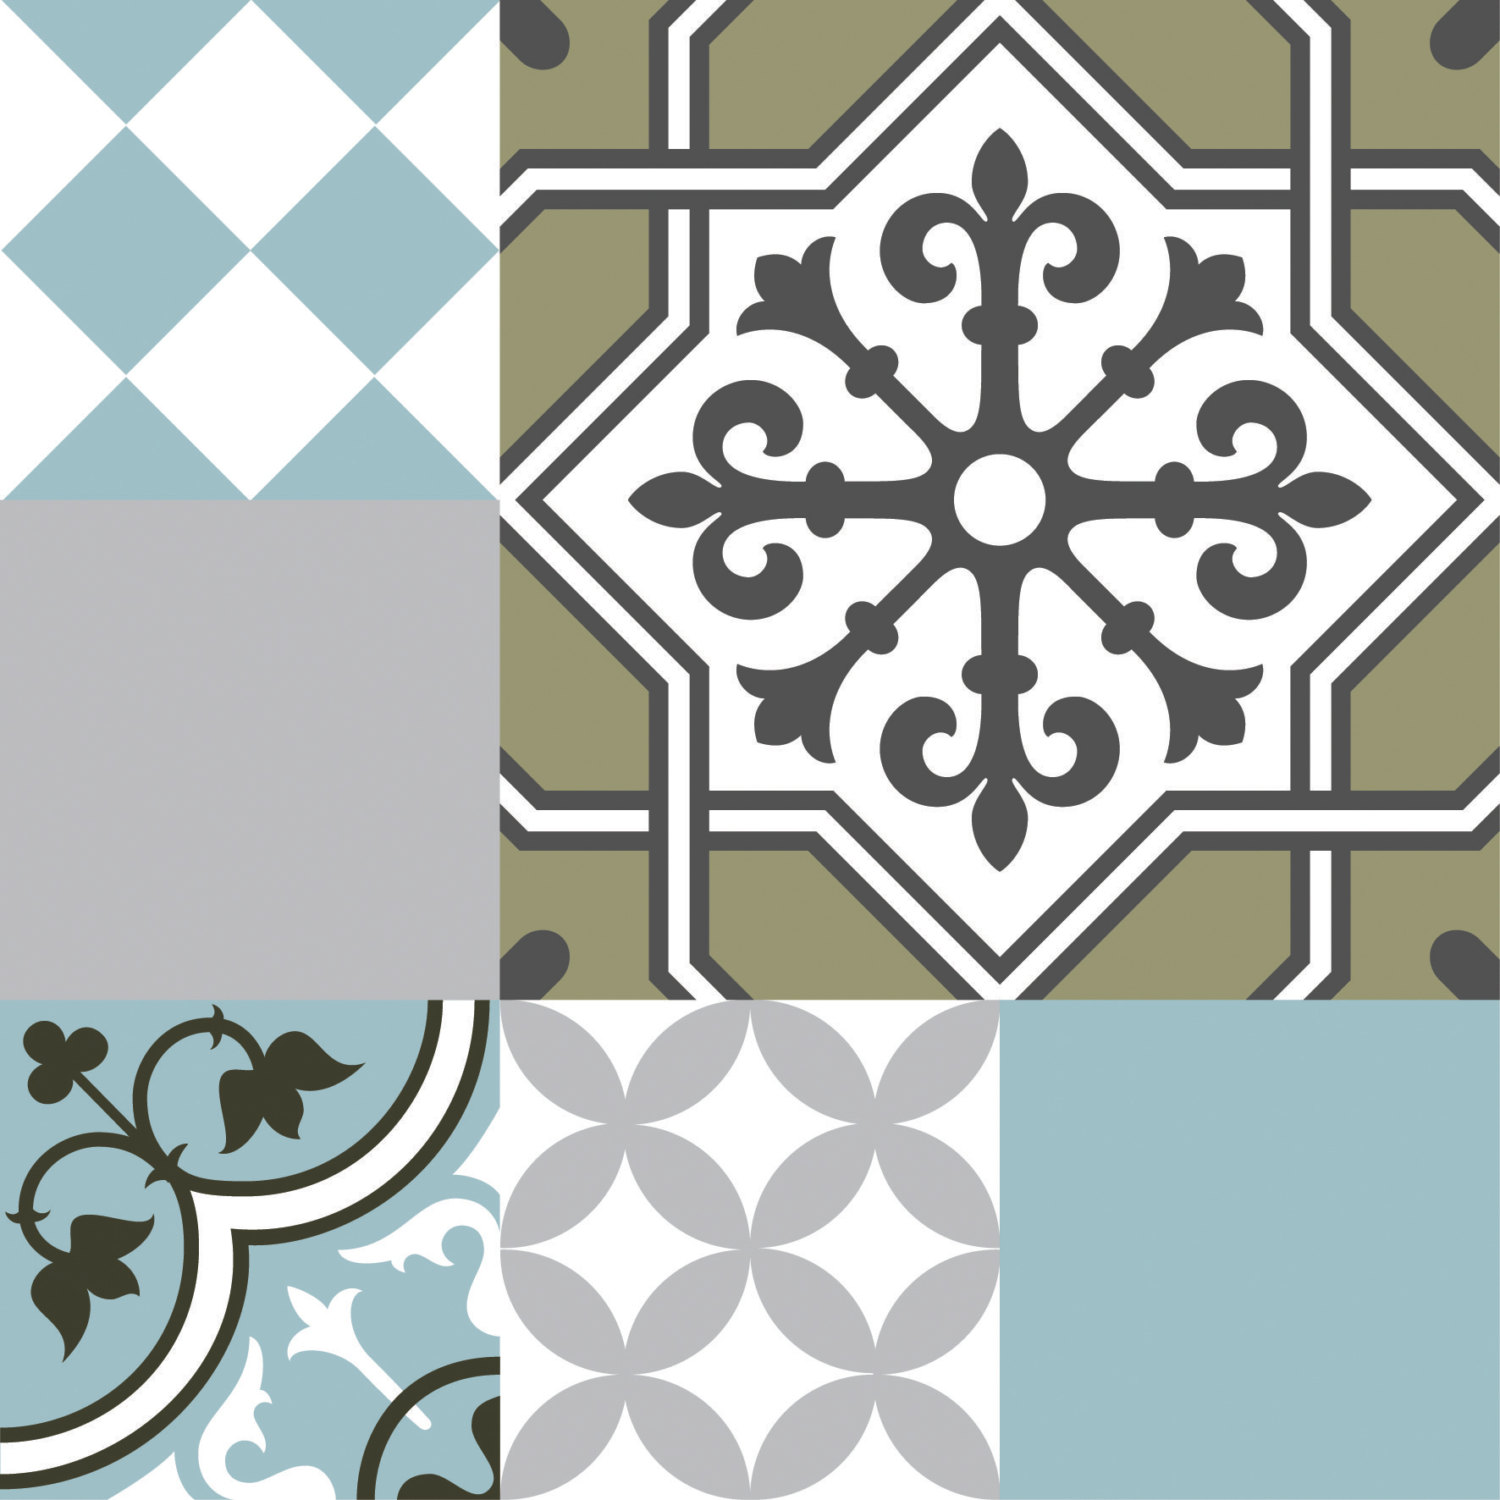 mix-tile-decals-kitchenbathroom-tiles-vinyl-floor-tiles-free-shipping-design-304-5897b1c43.jpg